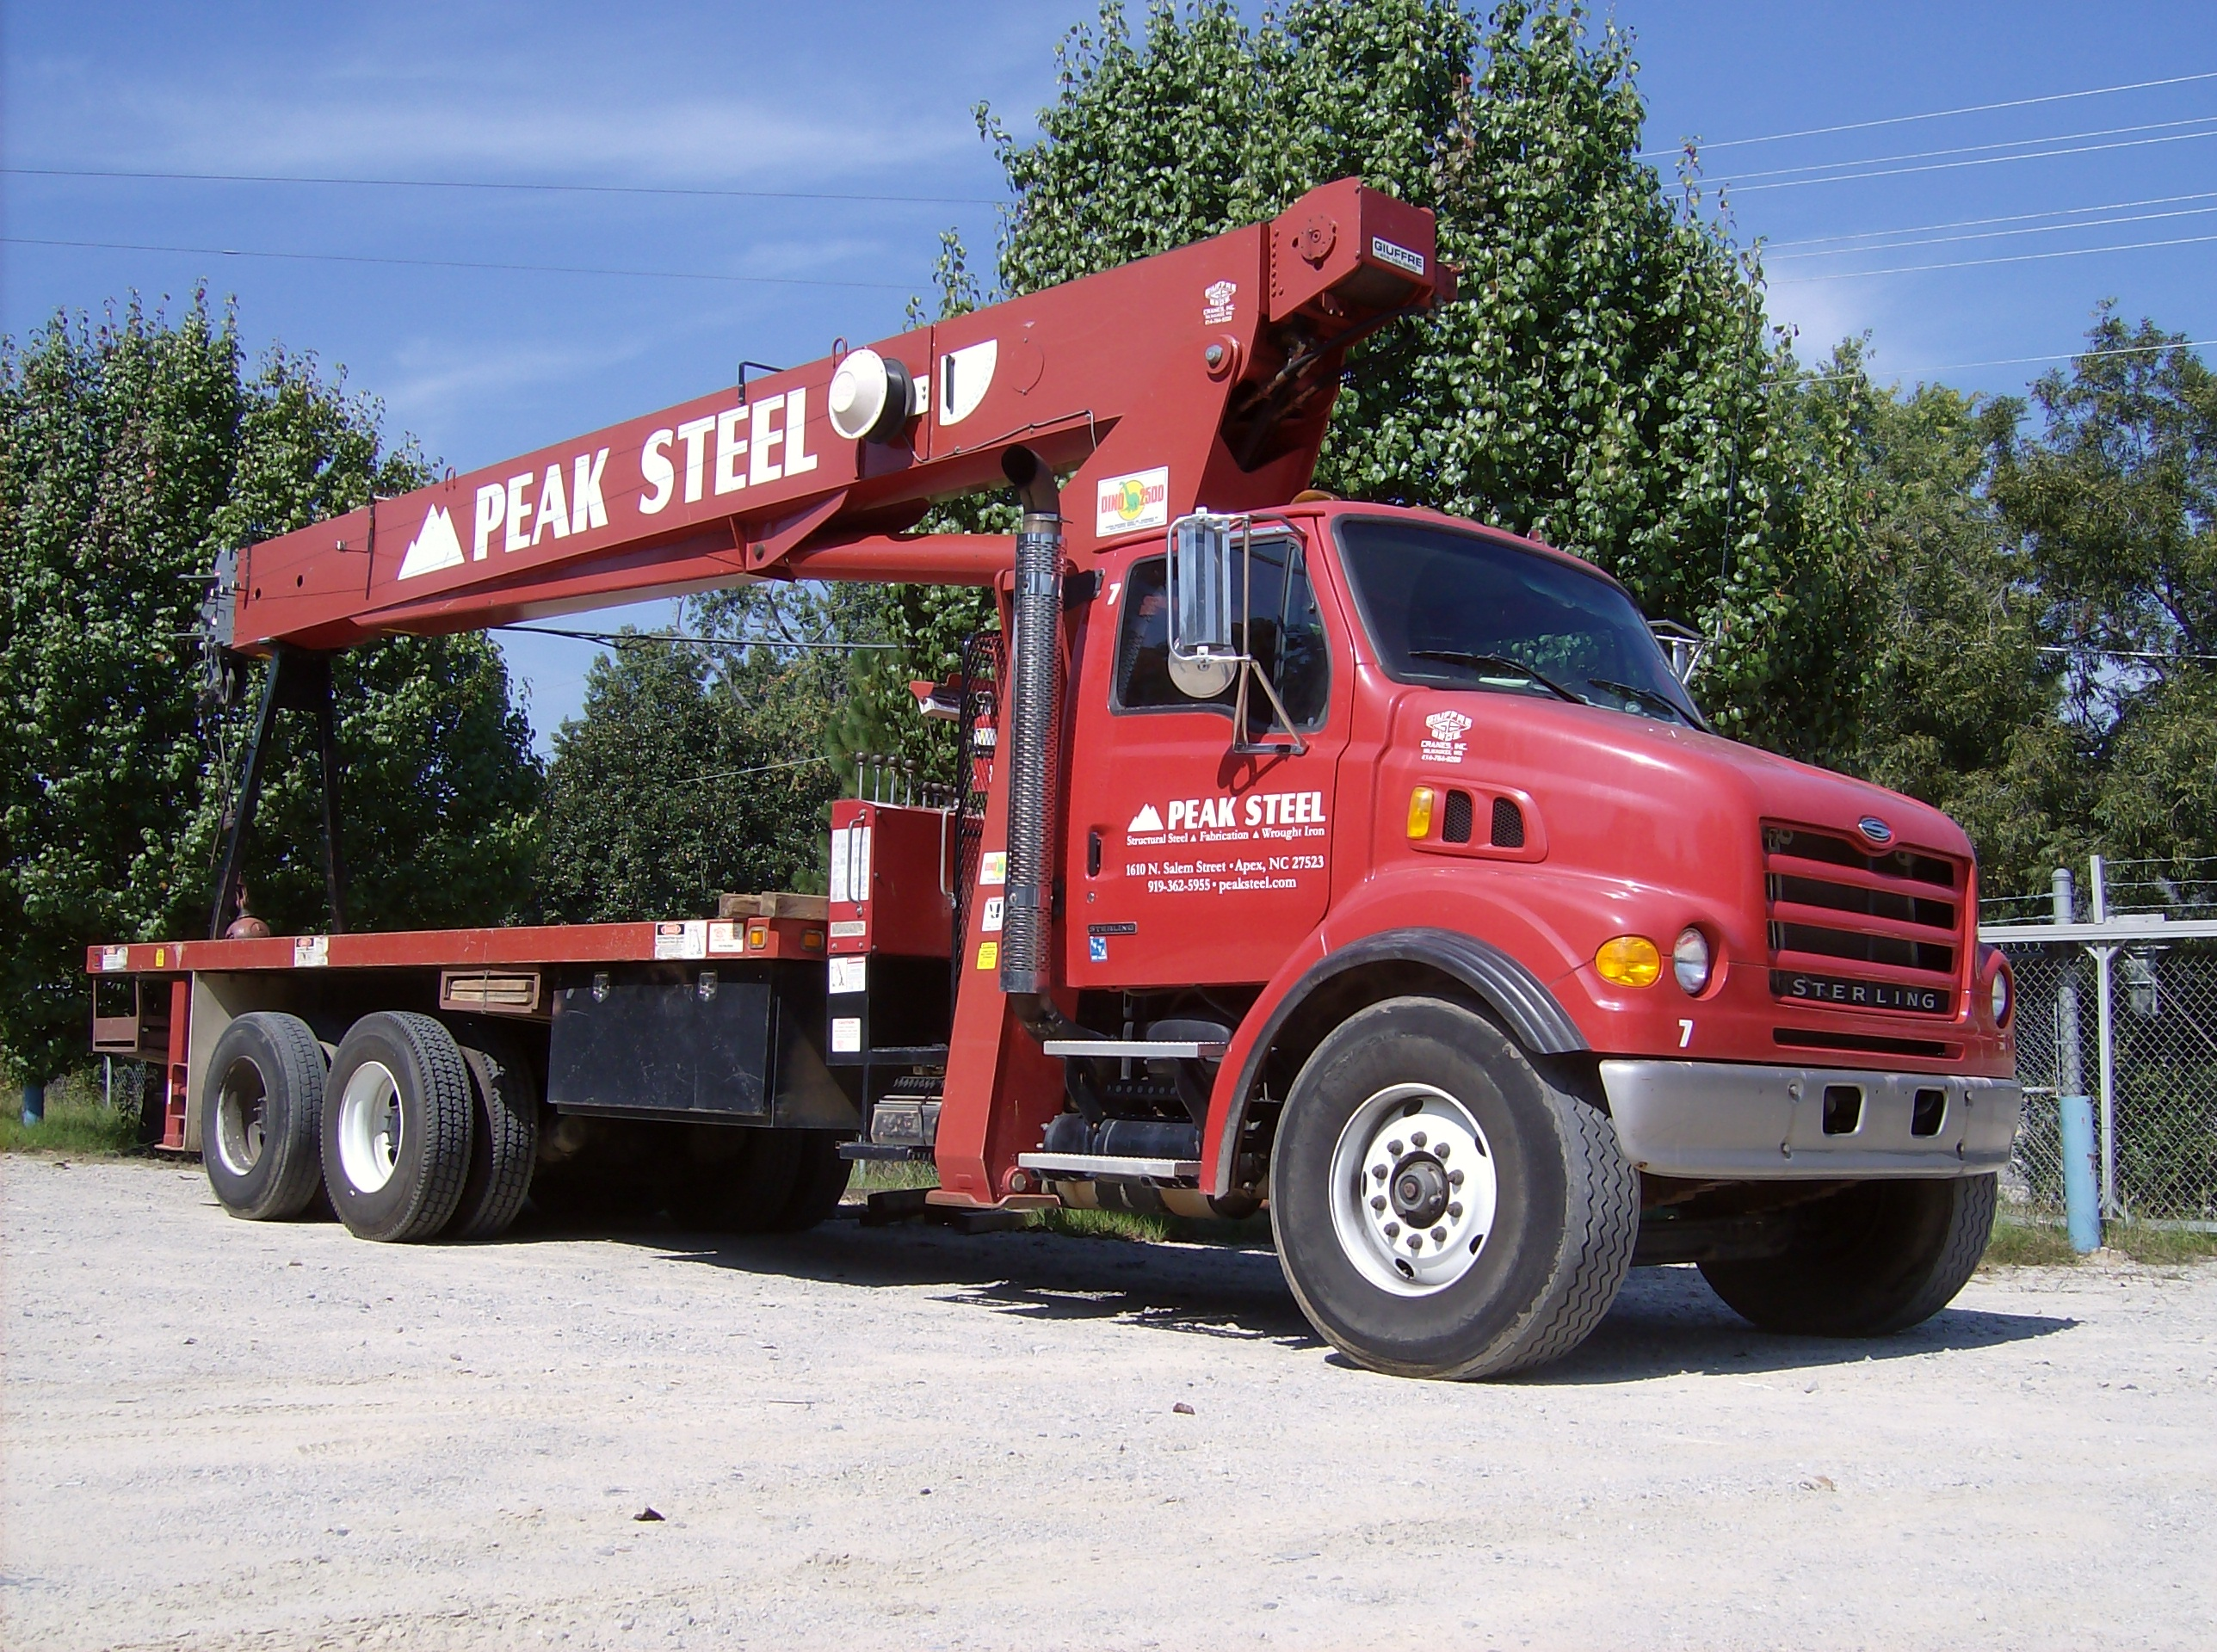 red-truck-002